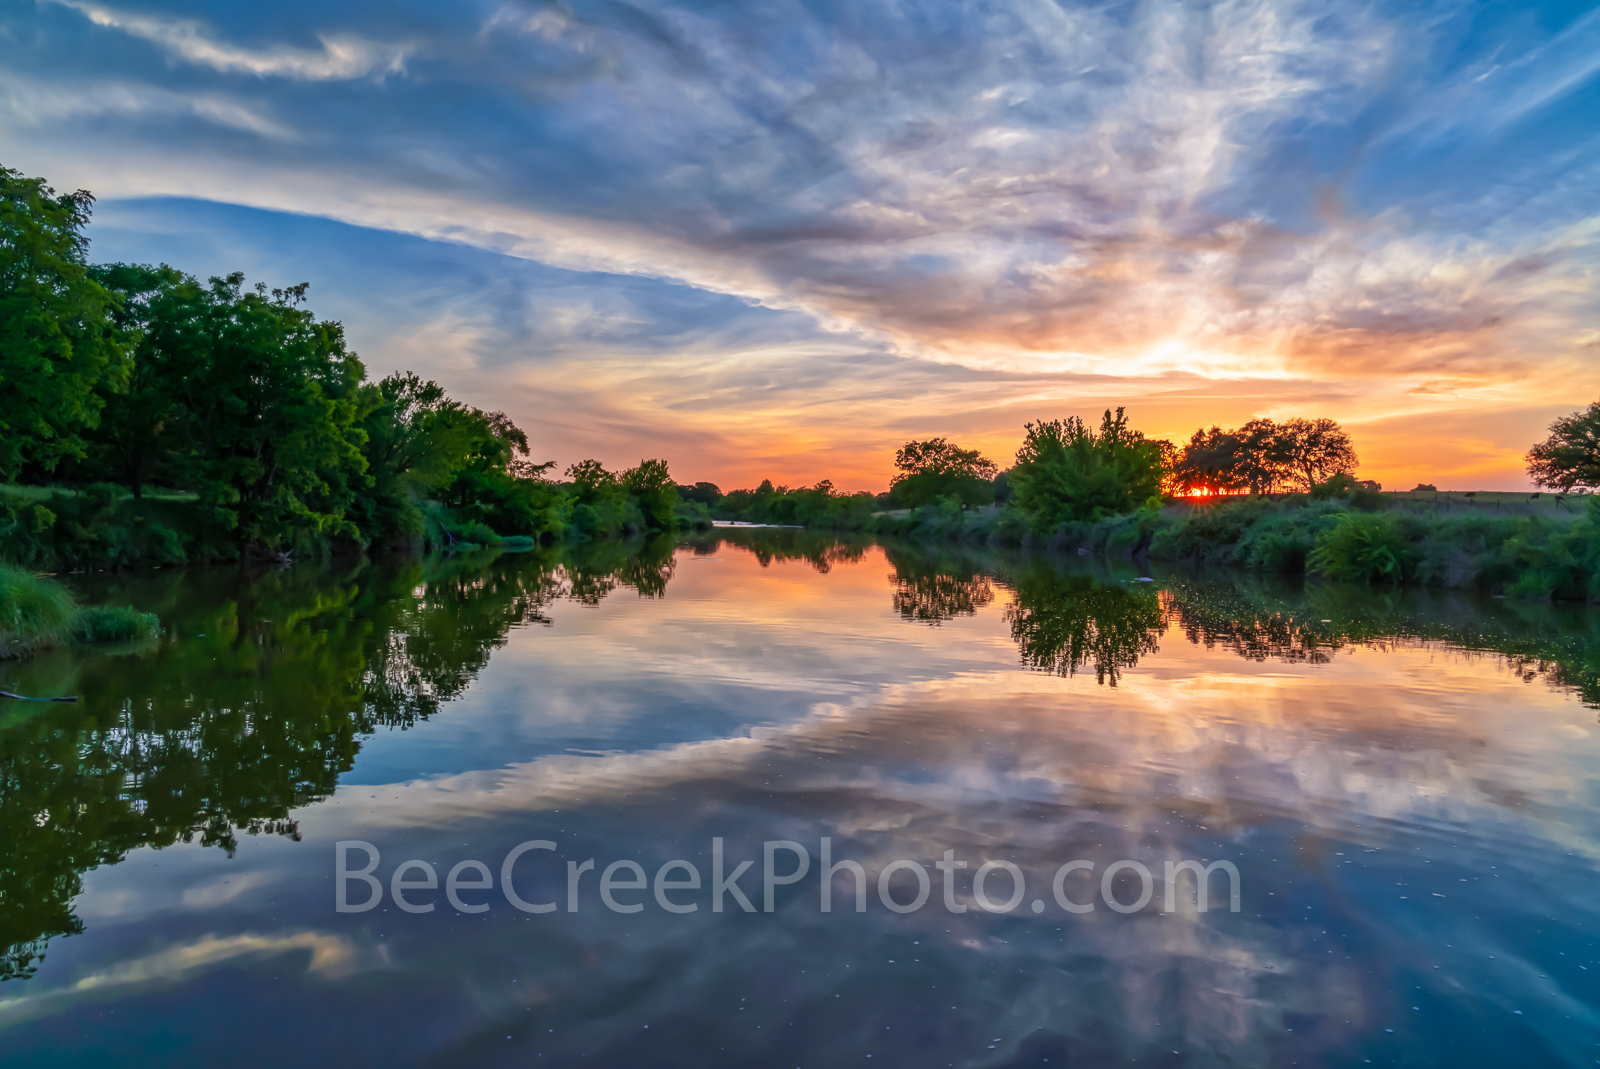 Texas Hill Country Sunset, Texas Hill country, sunset, Pedernales river, texas landscape, water, river, trees, rurals, Colorado river, centrral texas, hill country, Texas. rural, LBJ Ranch,  rural tex, photo